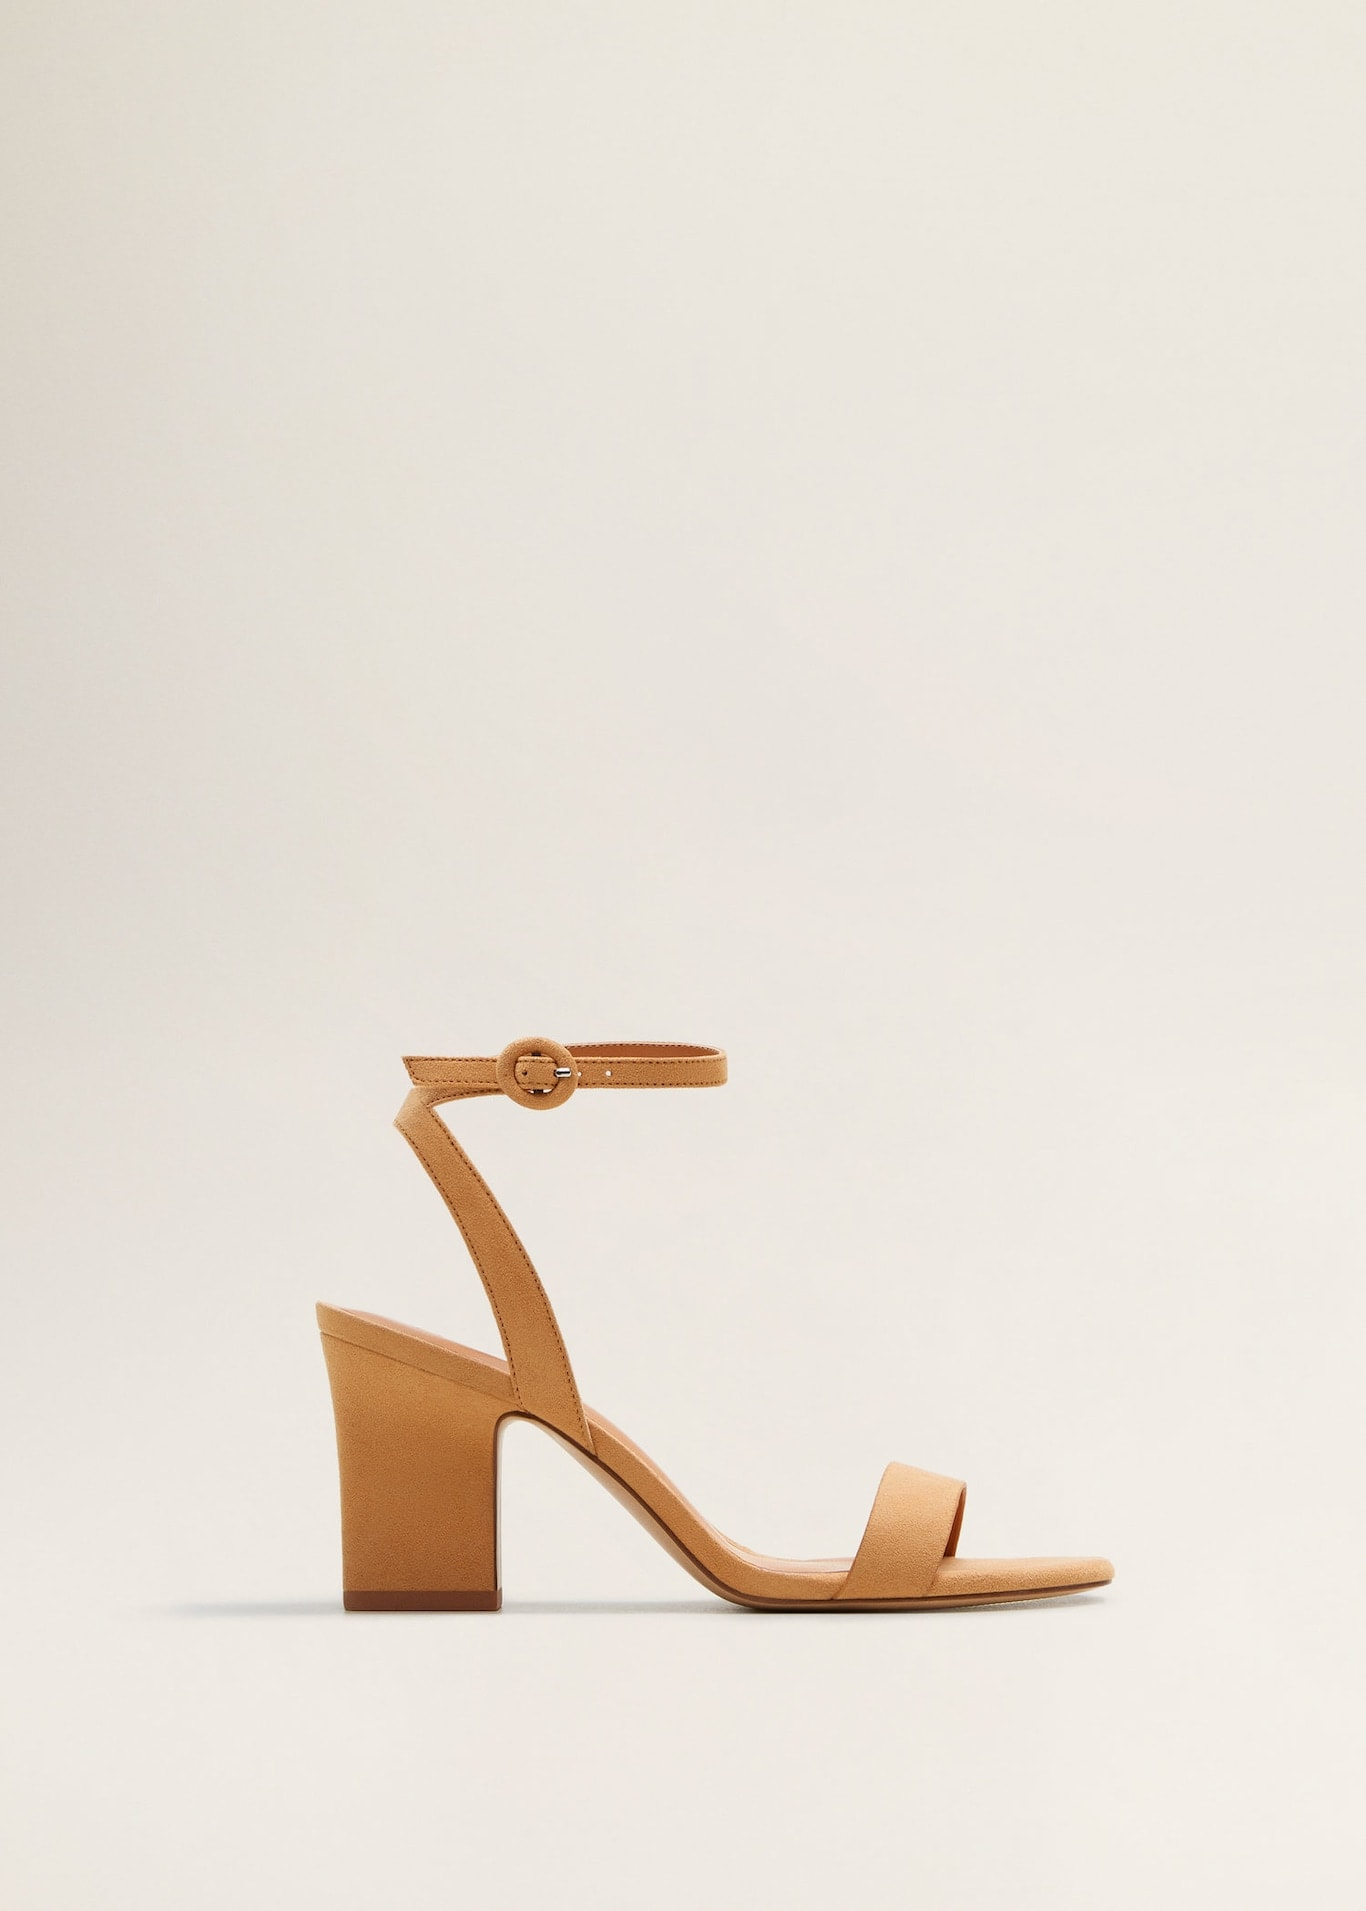 Ankle Cuff Sandals in nude